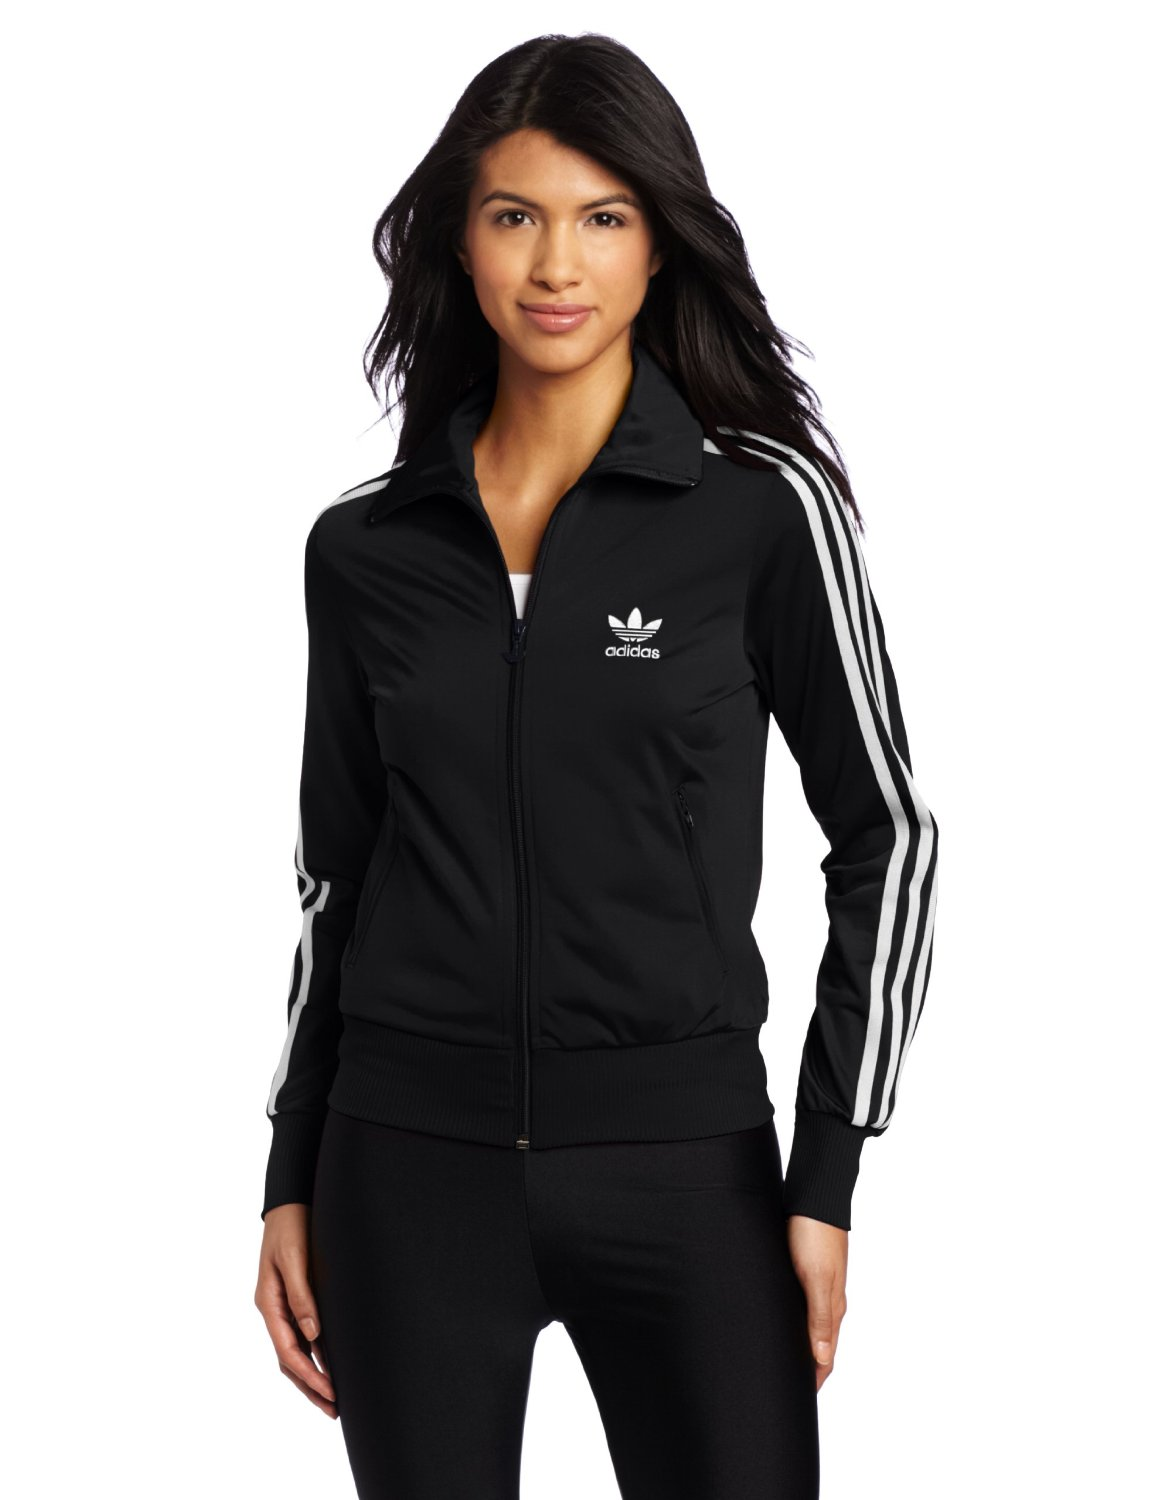 Women's Firebird Track Jacket